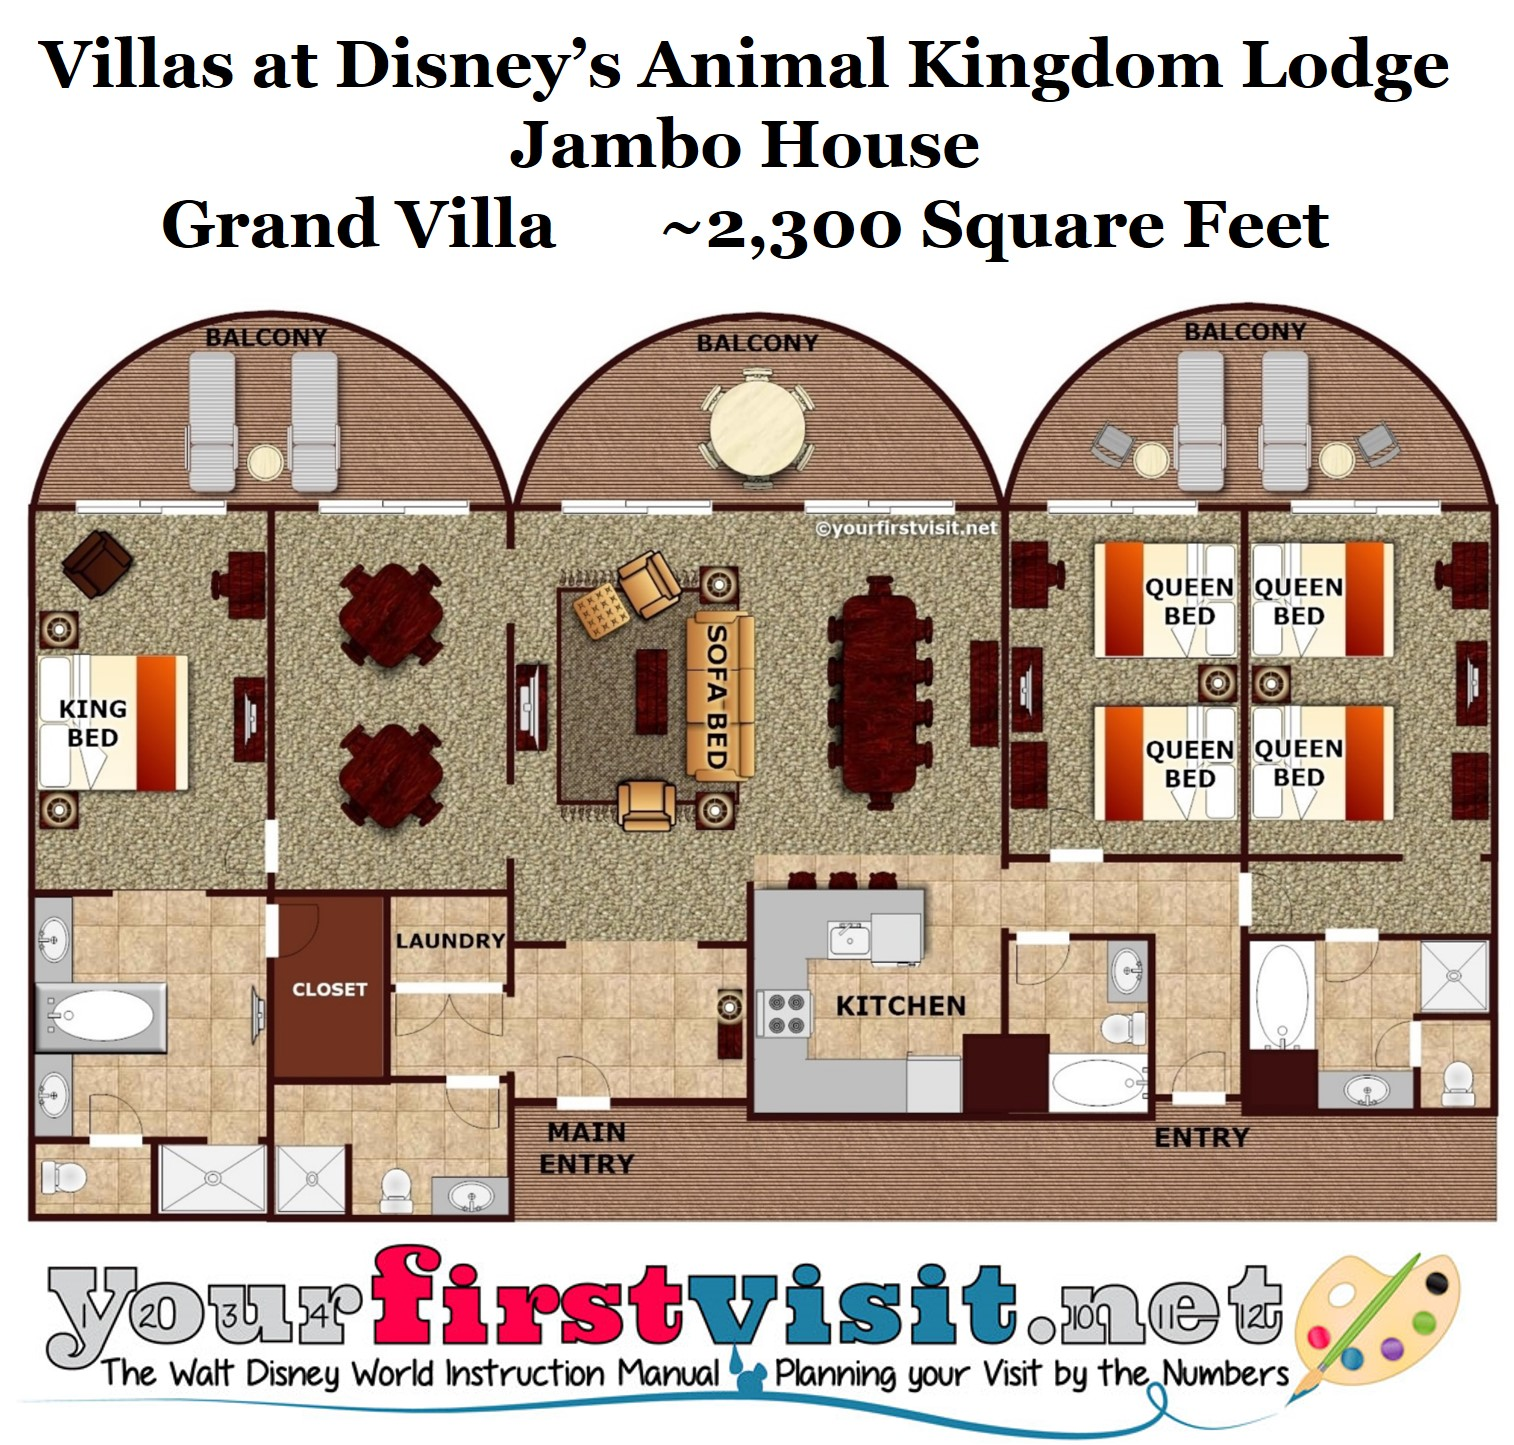 Animal kingdom lodge 2 bedroom villa jambo house www 3 bedroom villa floor plans